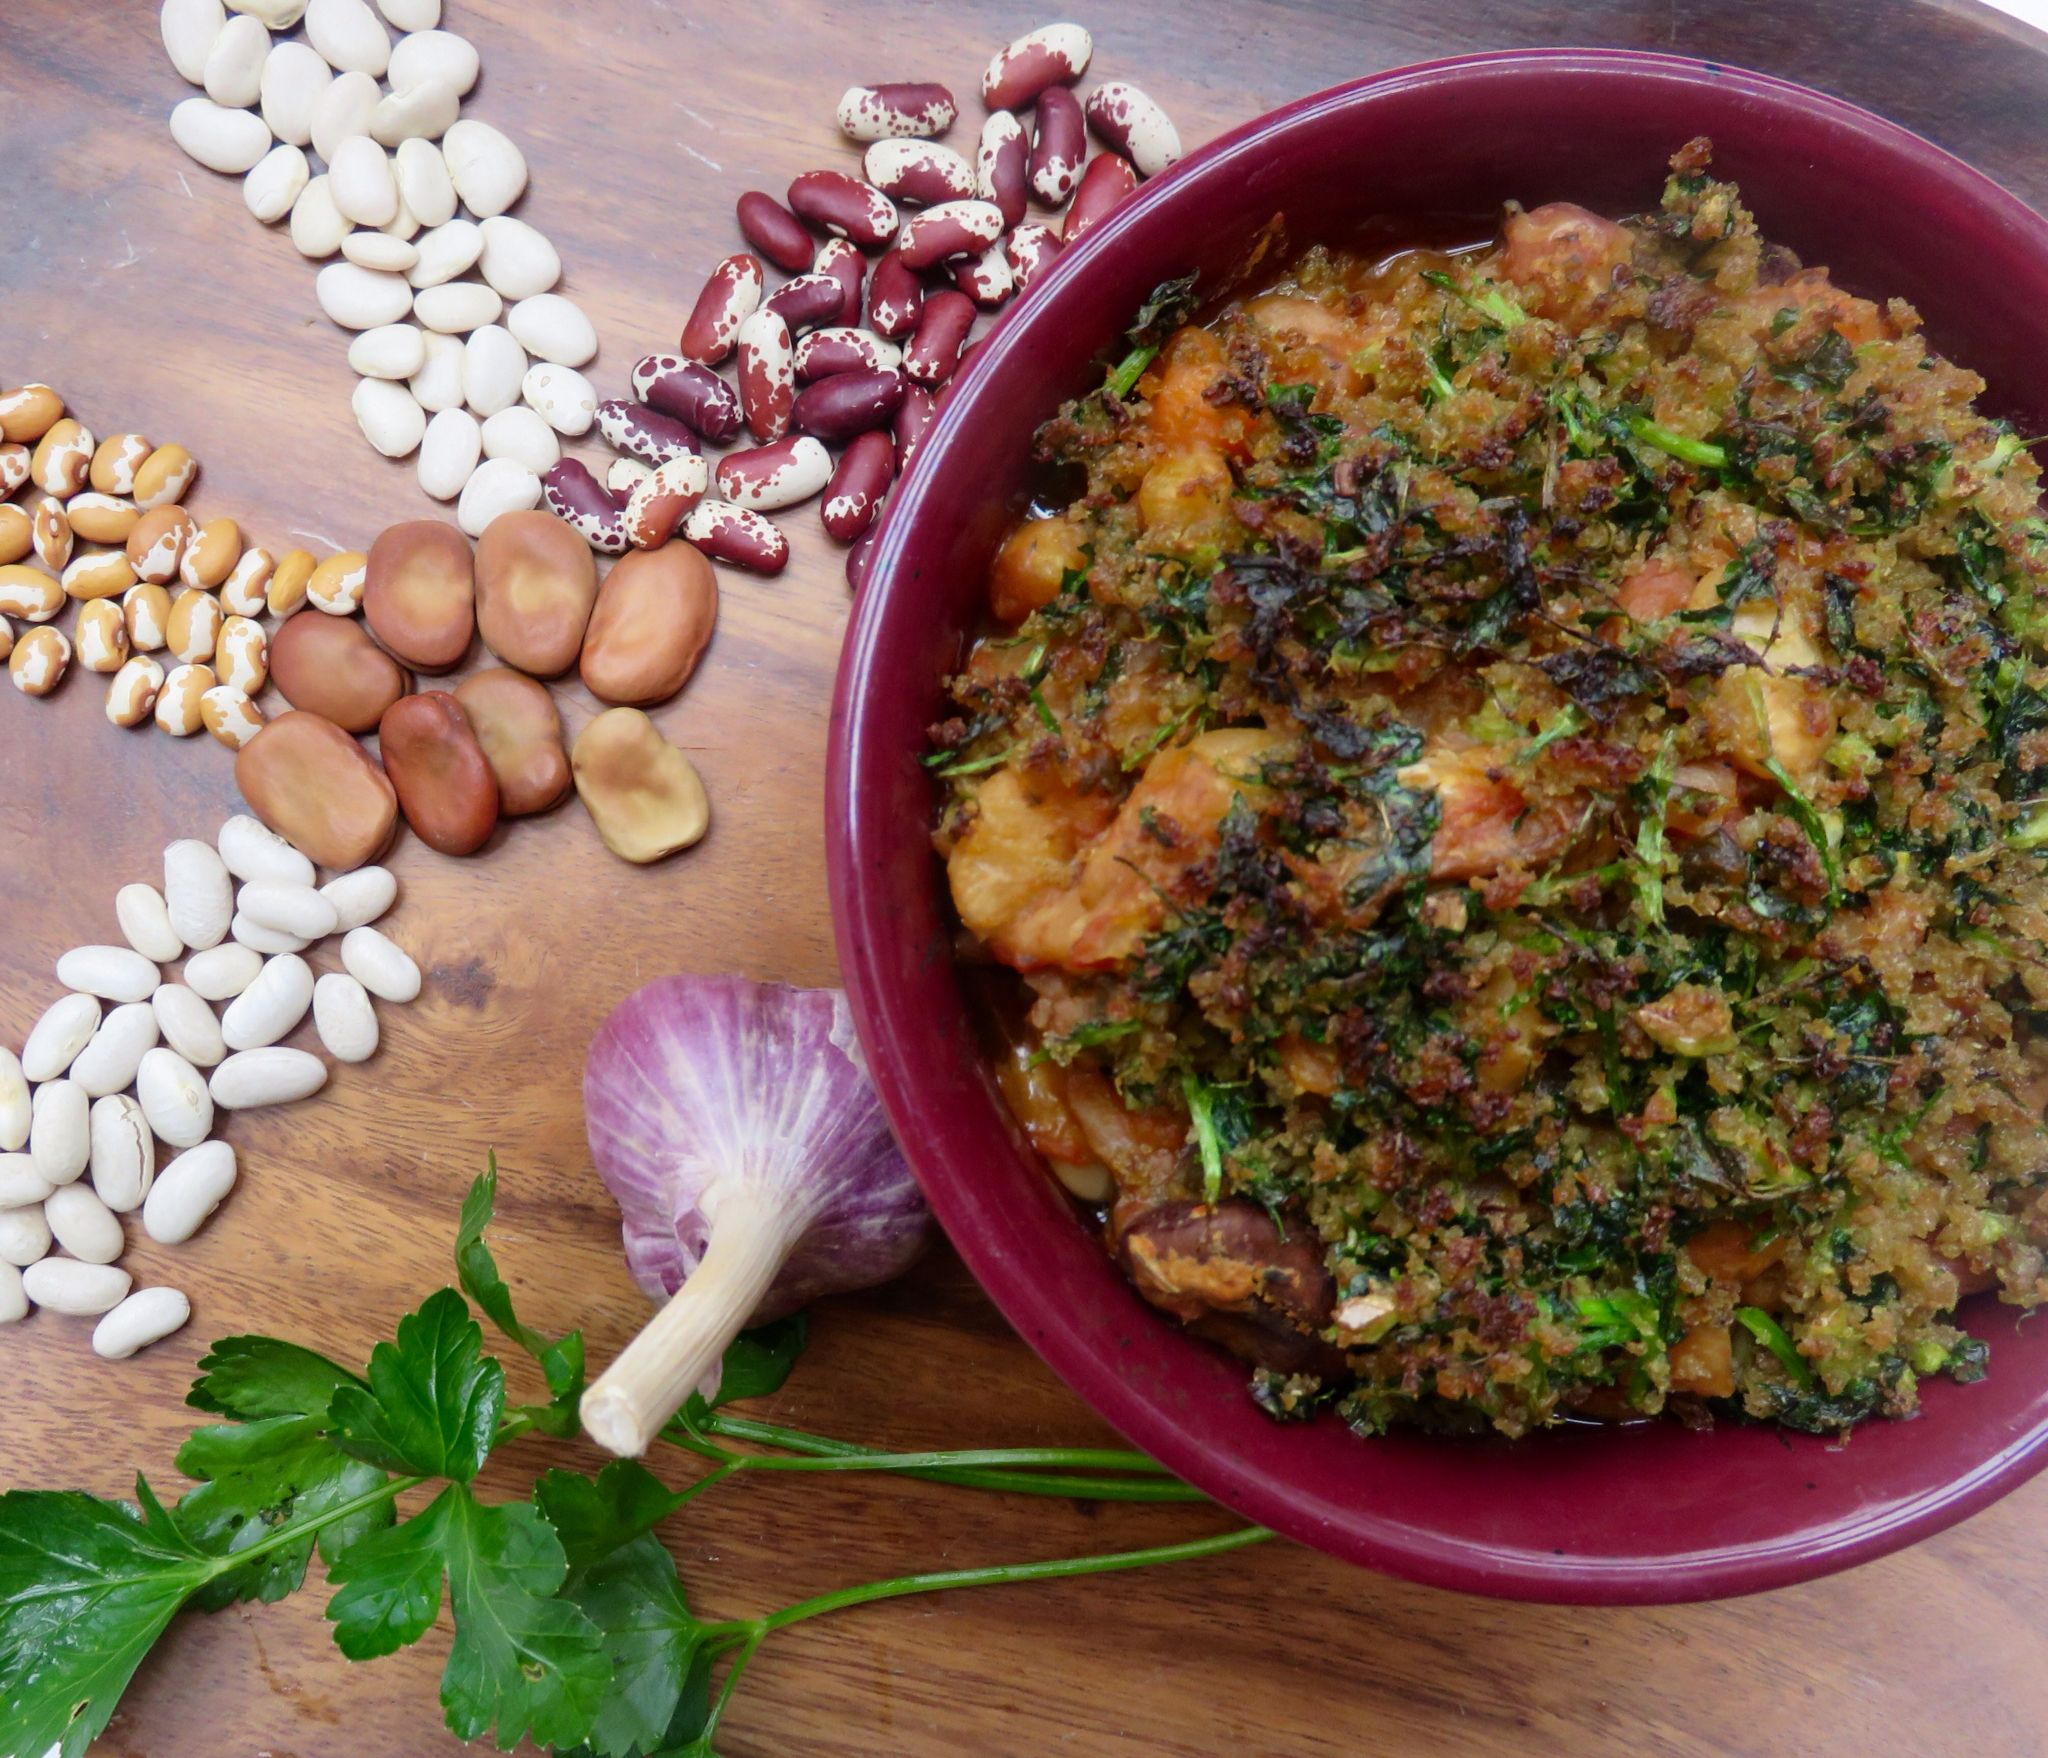 Vegan cassoulet; Heartwarming bean stew with parsley-bread crust